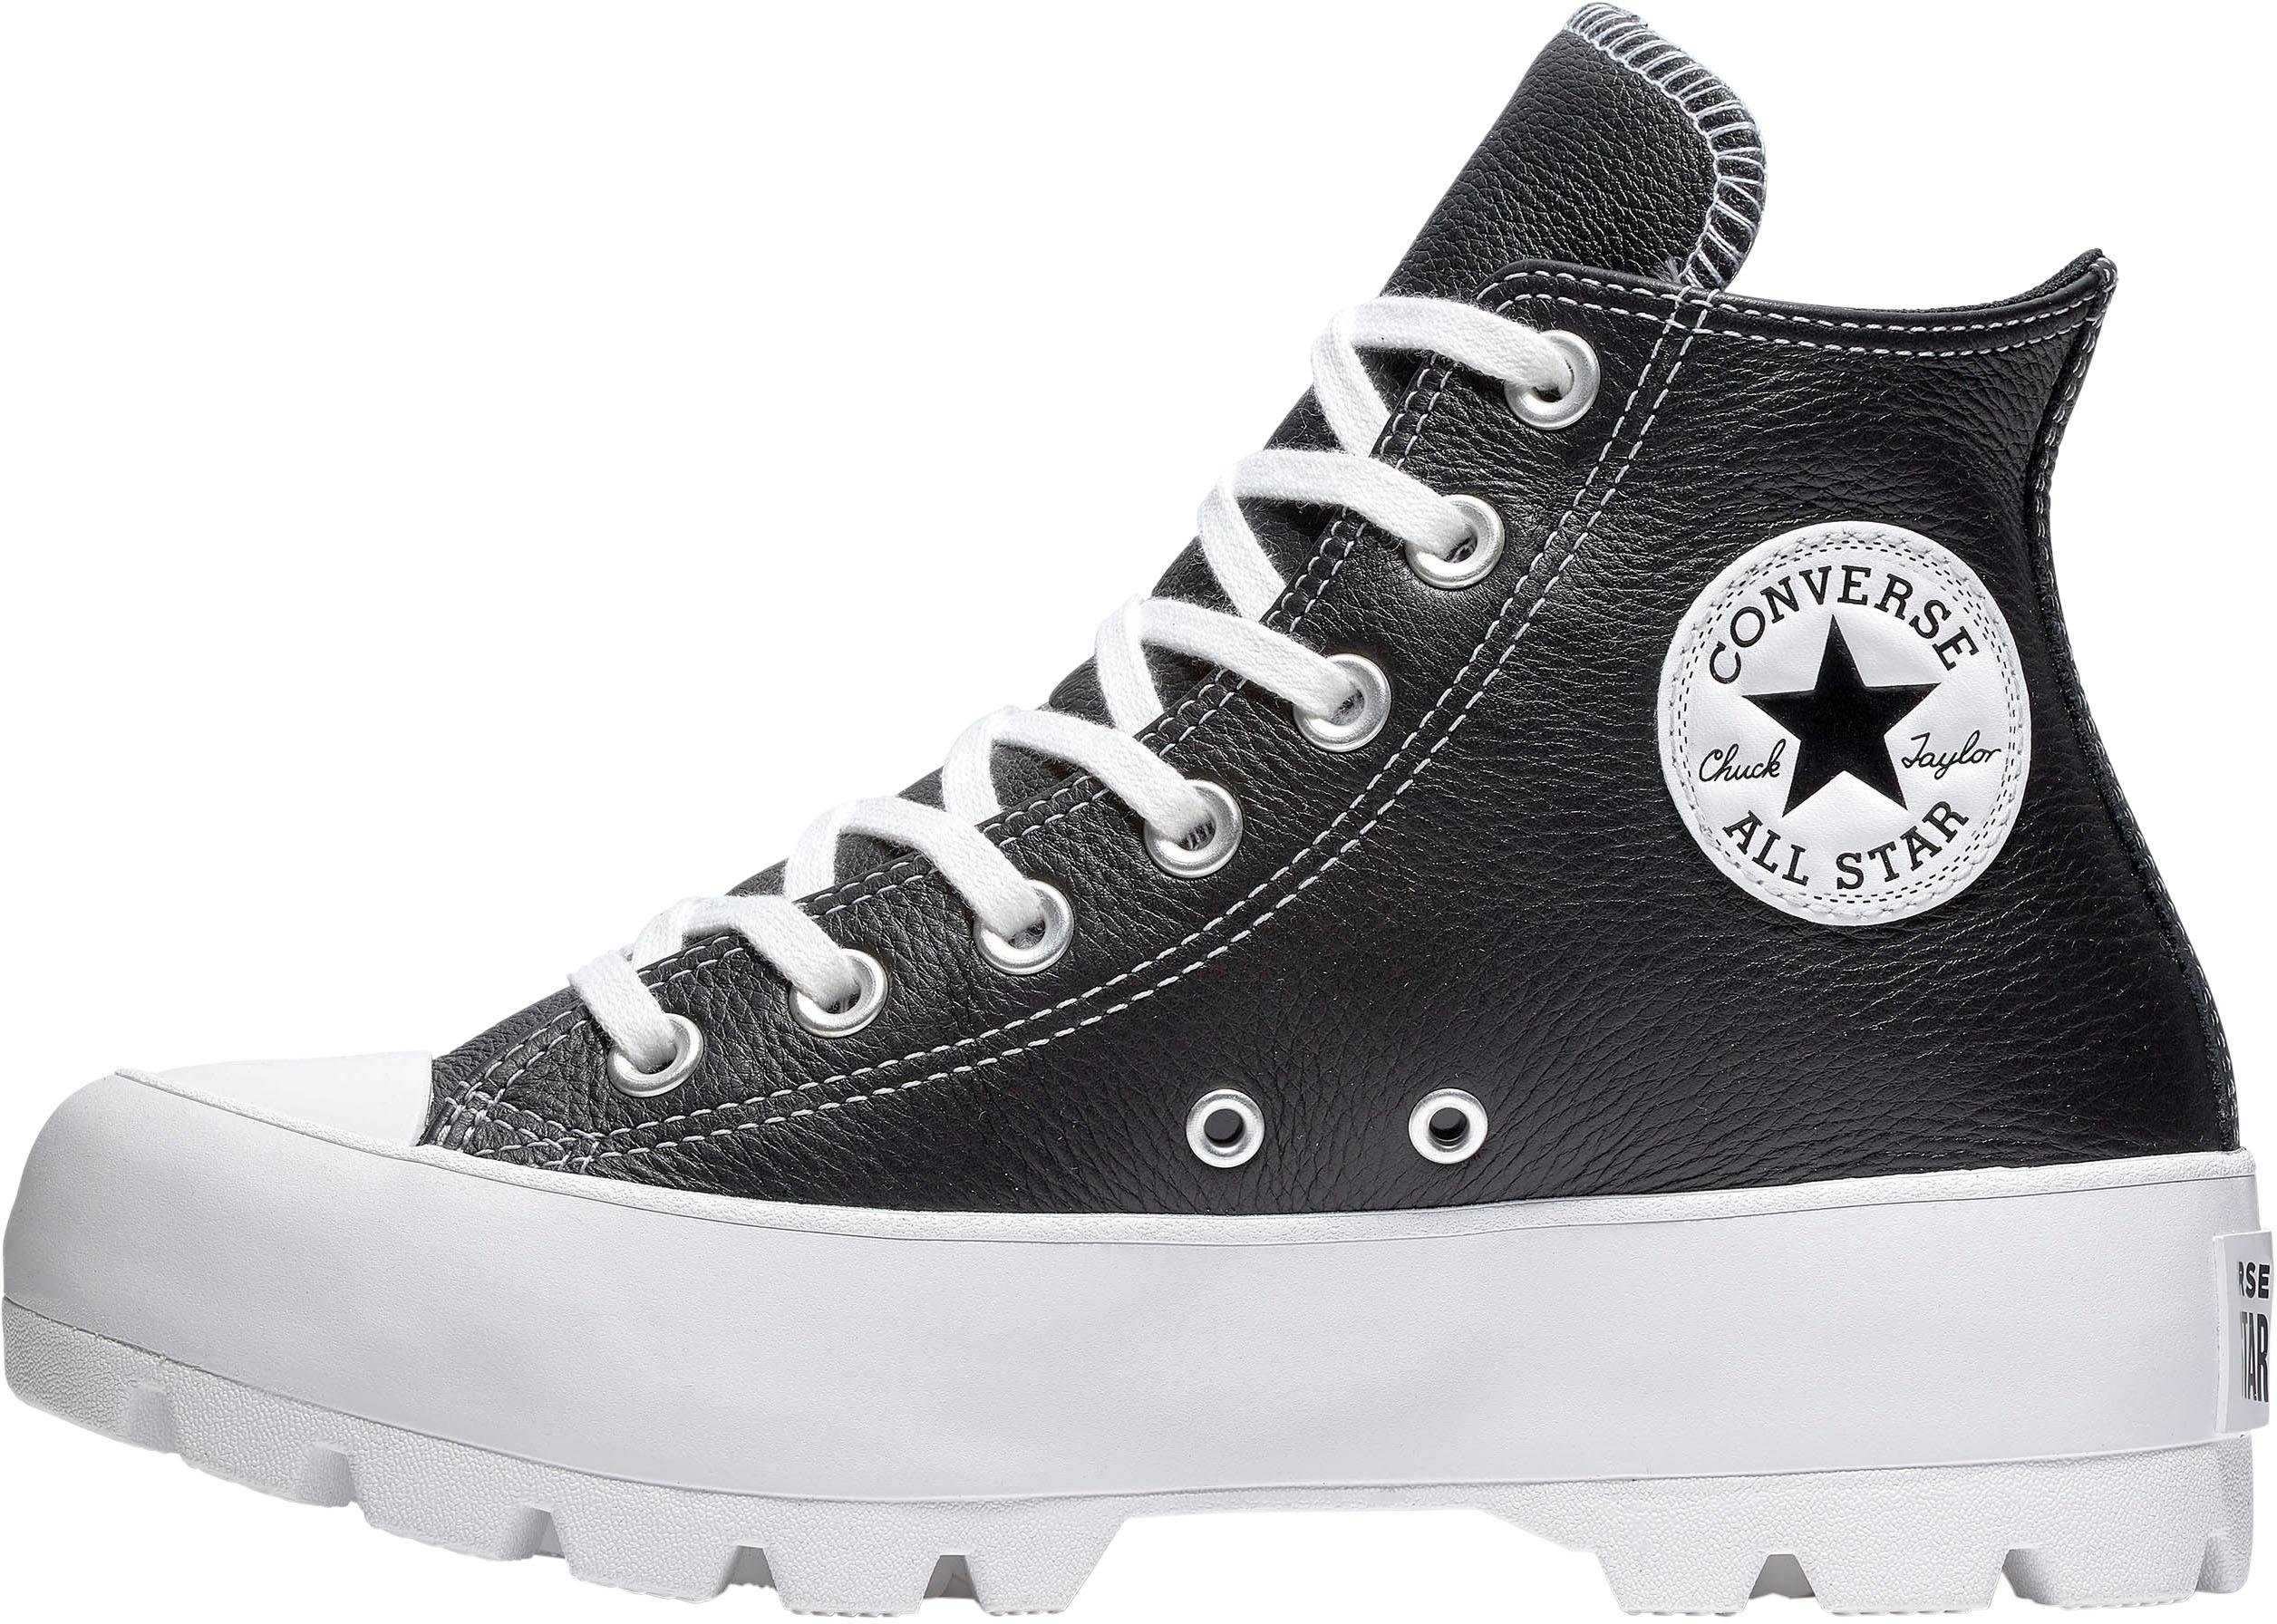 Converse plateausneakers »Chuck Taylor All Star Lugged Hi« bij OTTO online kopen